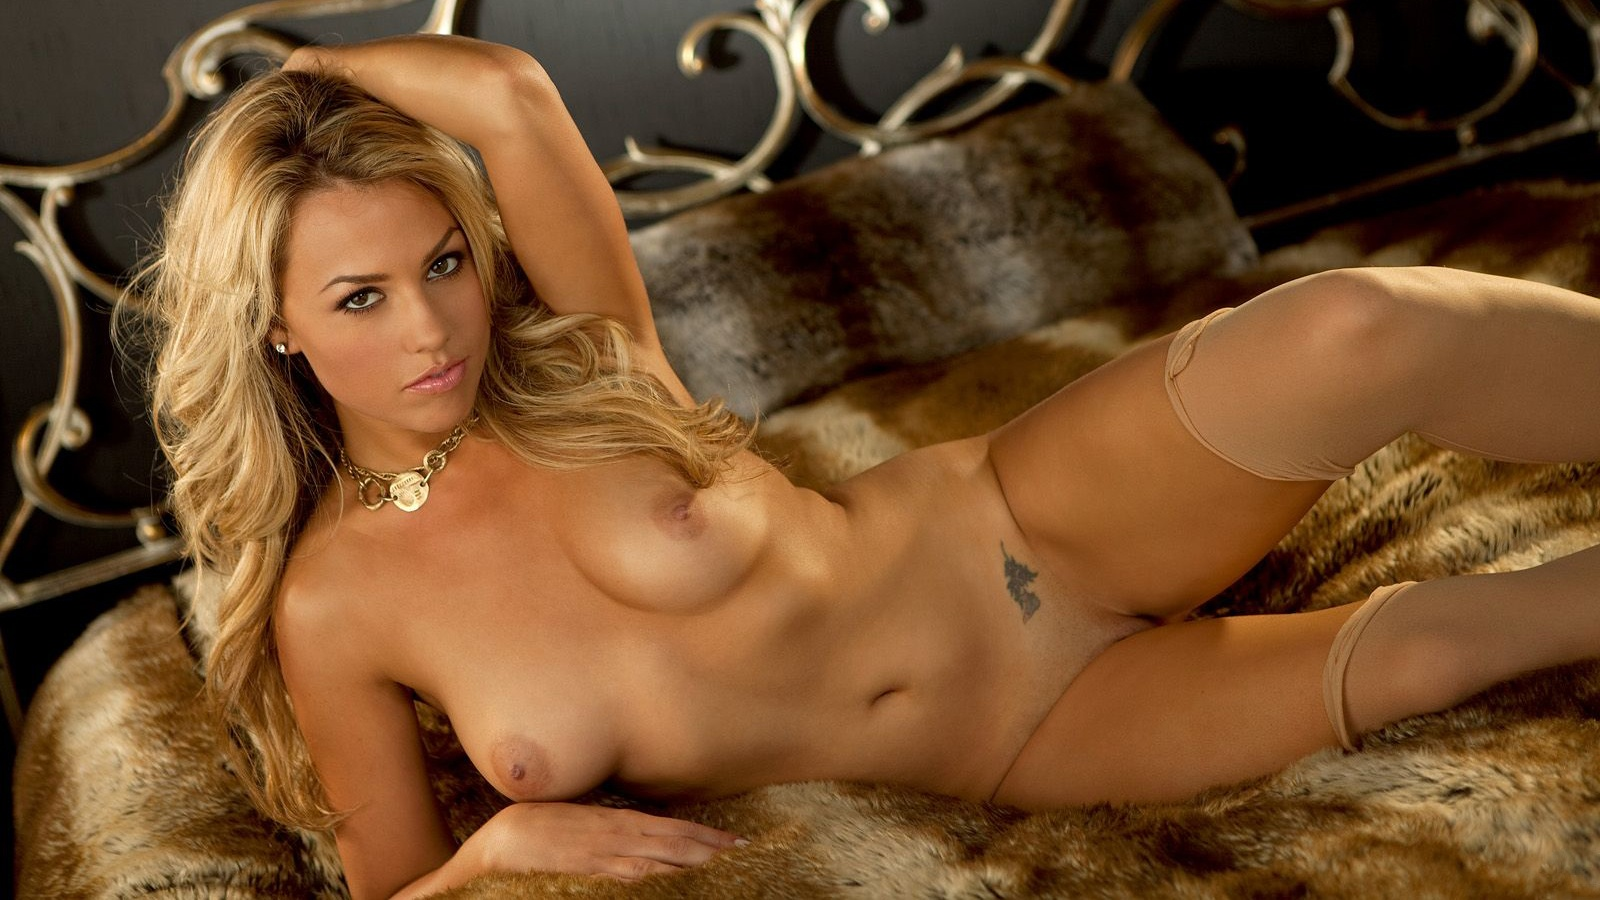 models Blonde nude playboy